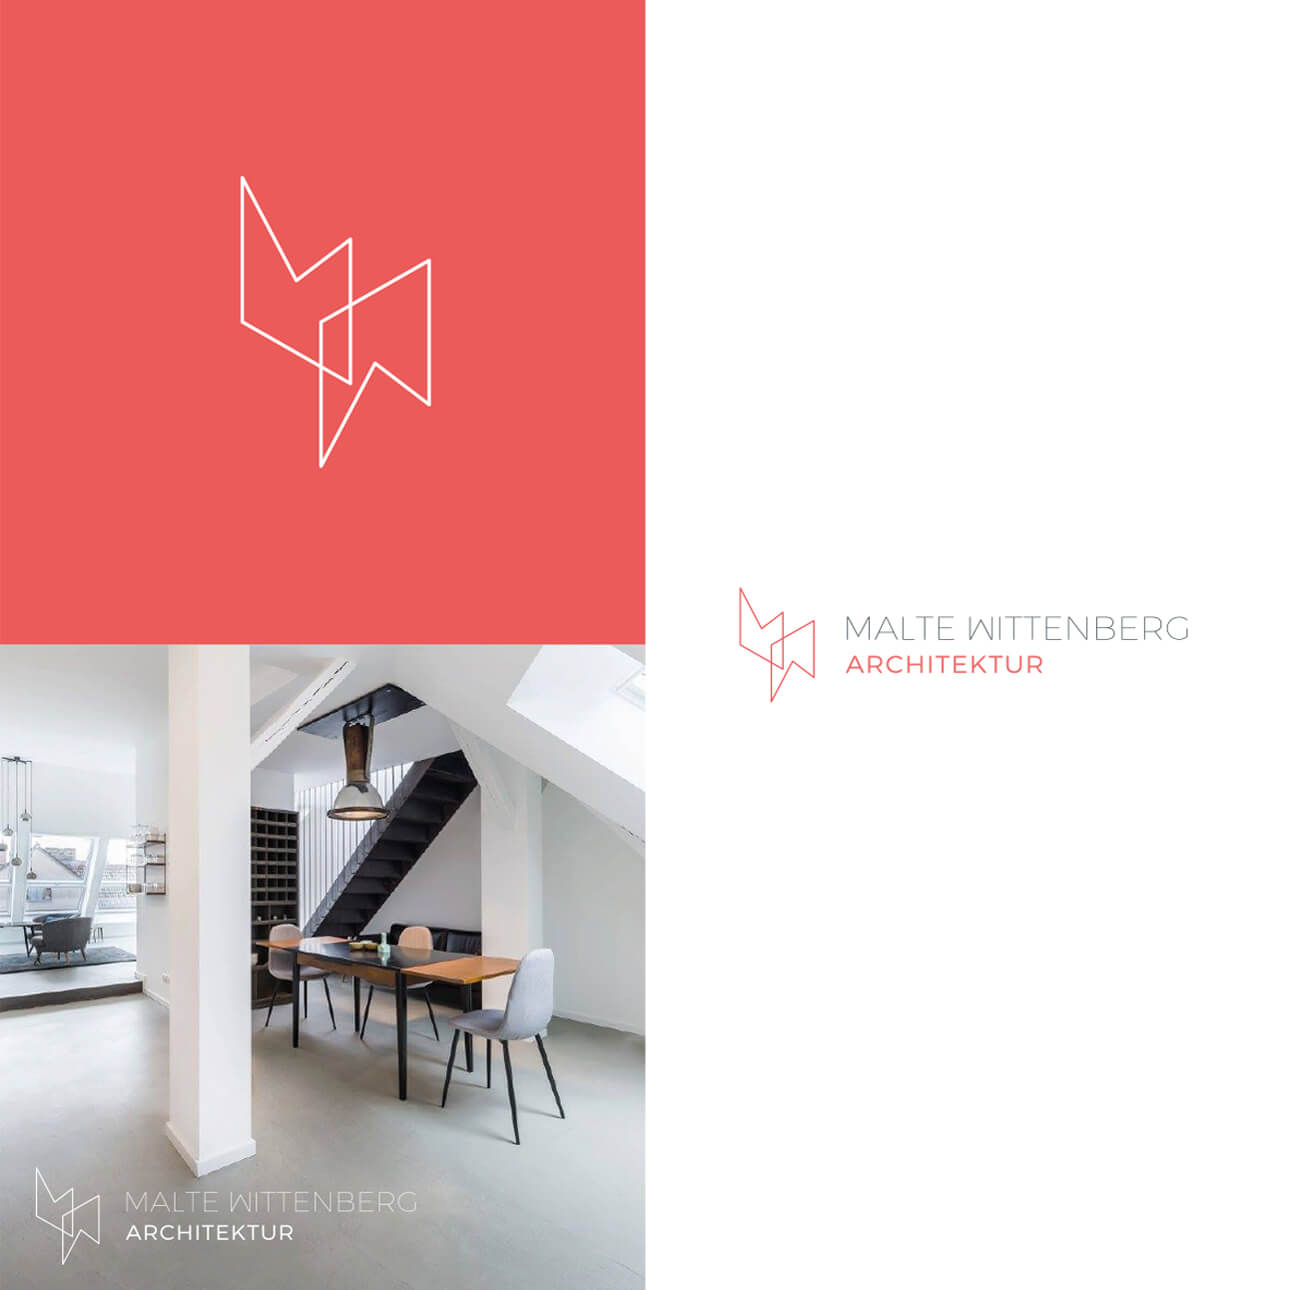 Malte wittenberg Architect by markos-esther